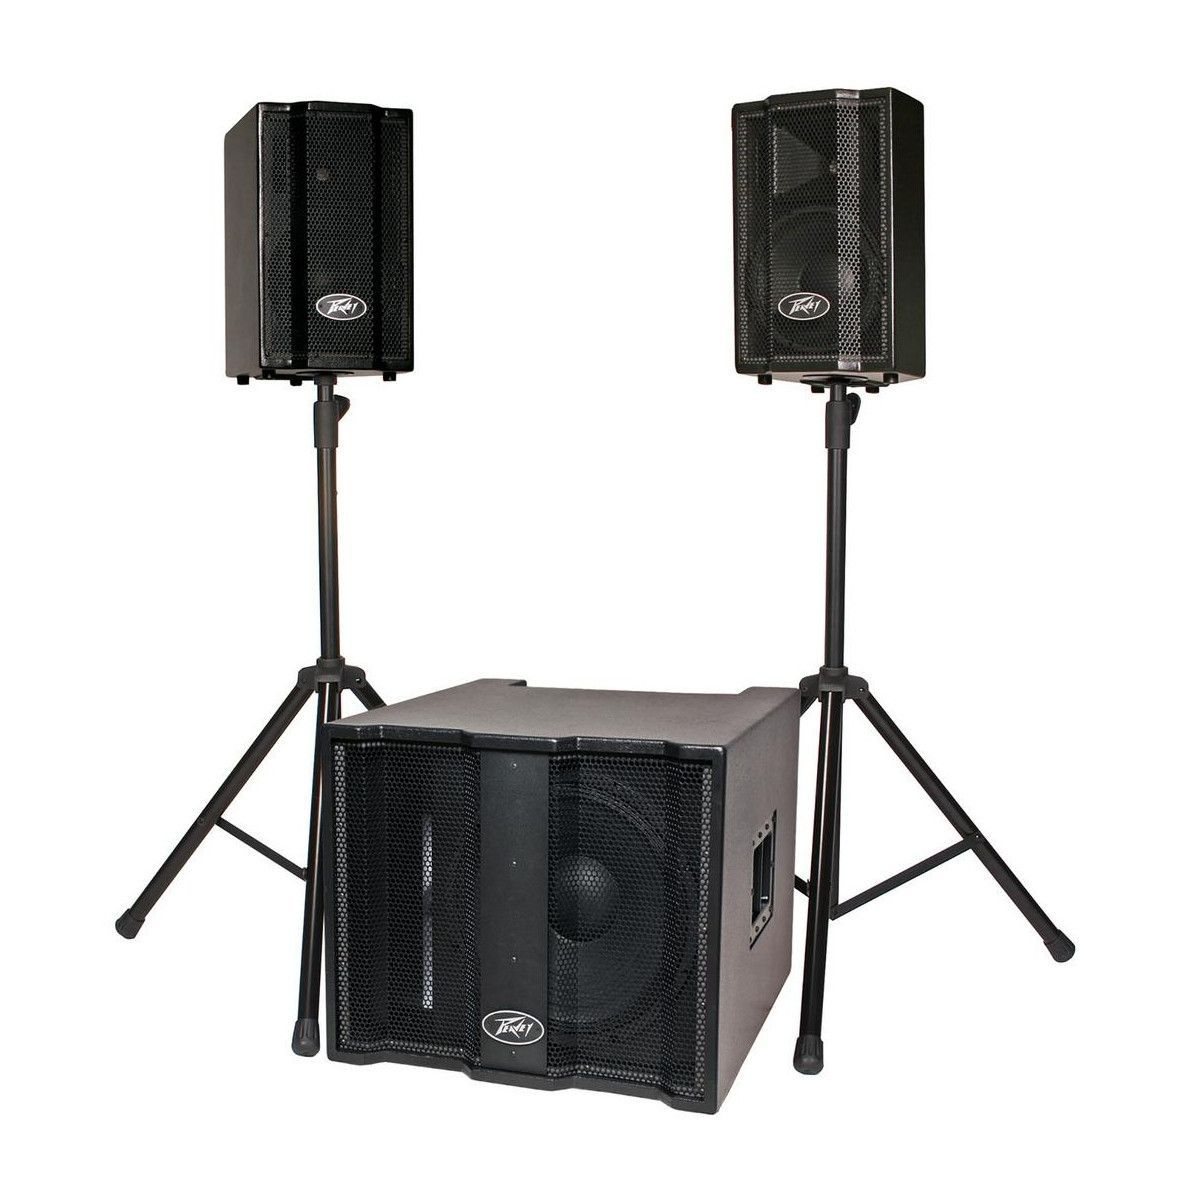 peavey triflex ii portable pa system with 2 satellite speakers 1x15 subwoofer cables cover. Black Bedroom Furniture Sets. Home Design Ideas